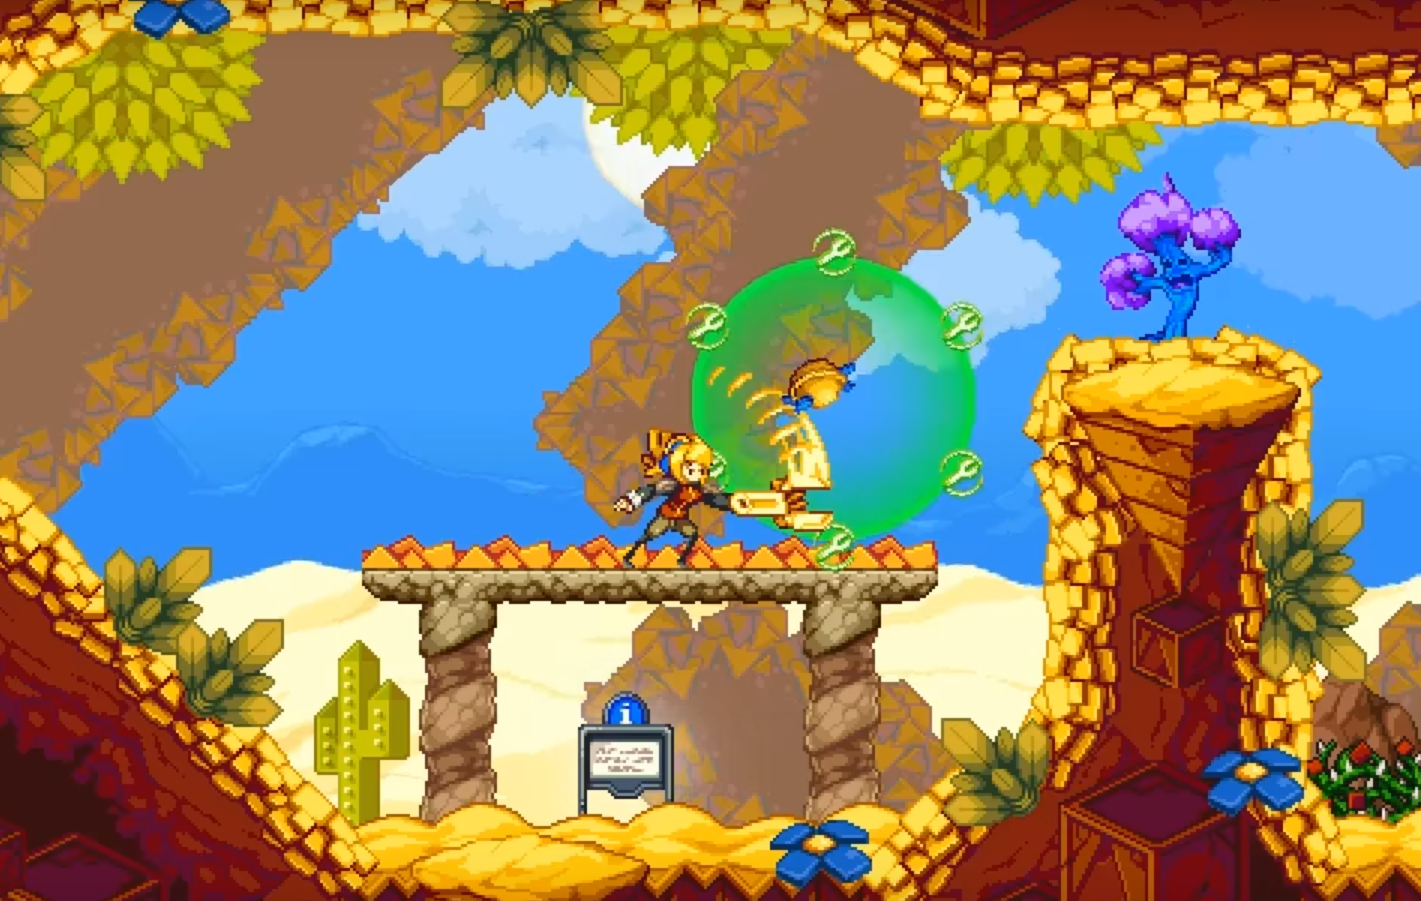 Iconoclasts An Indie Action Adventure Game Inspired By